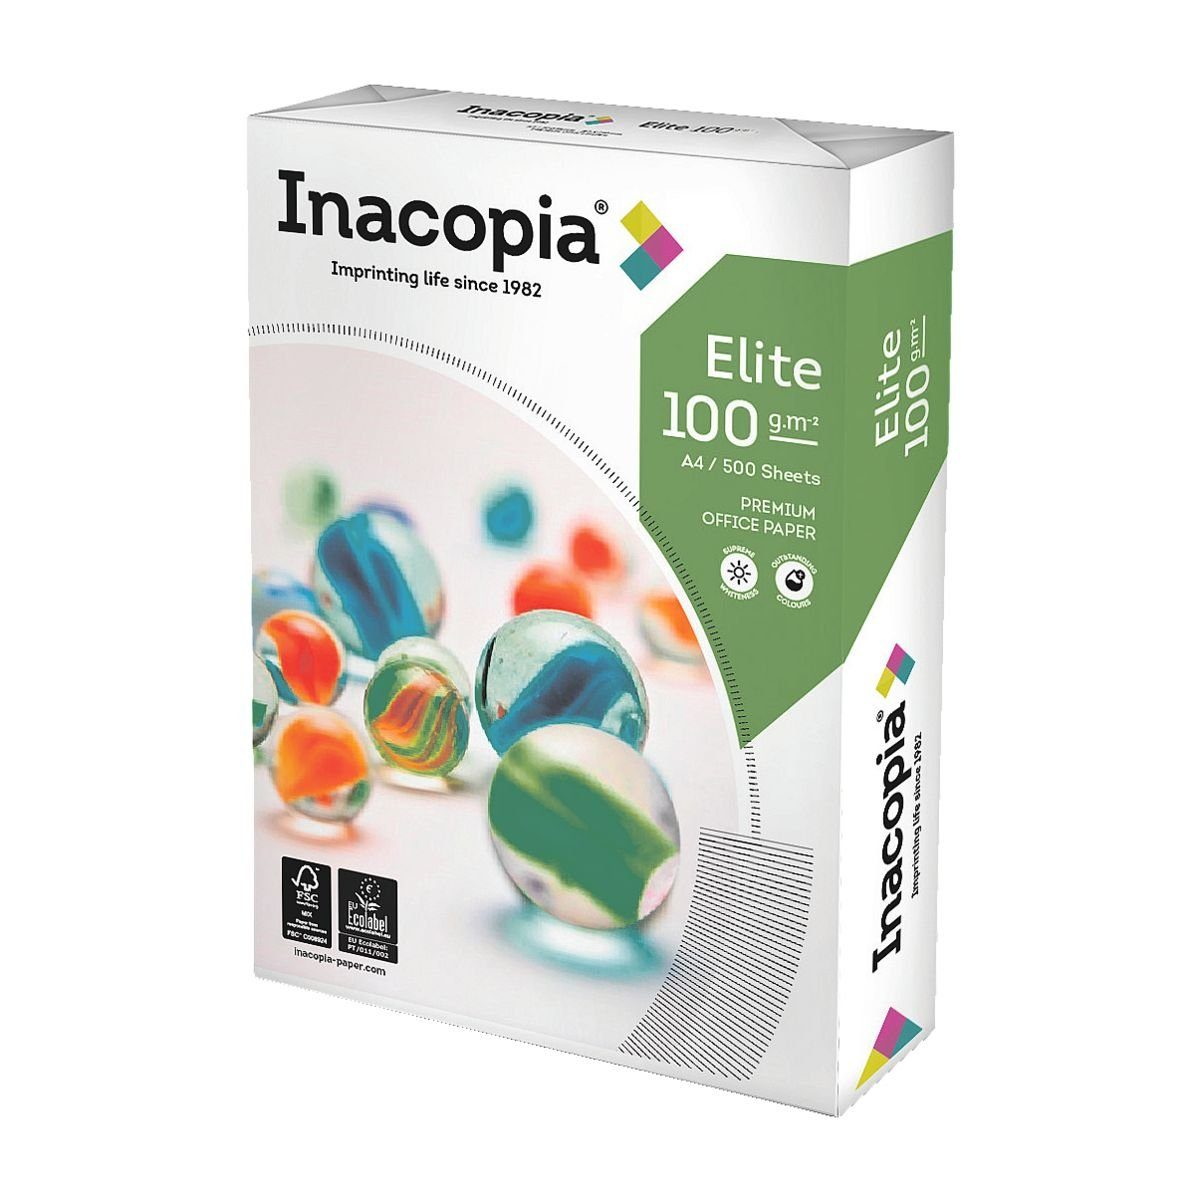 Inacopia Multifunktionales Druckerpapier »Elite«